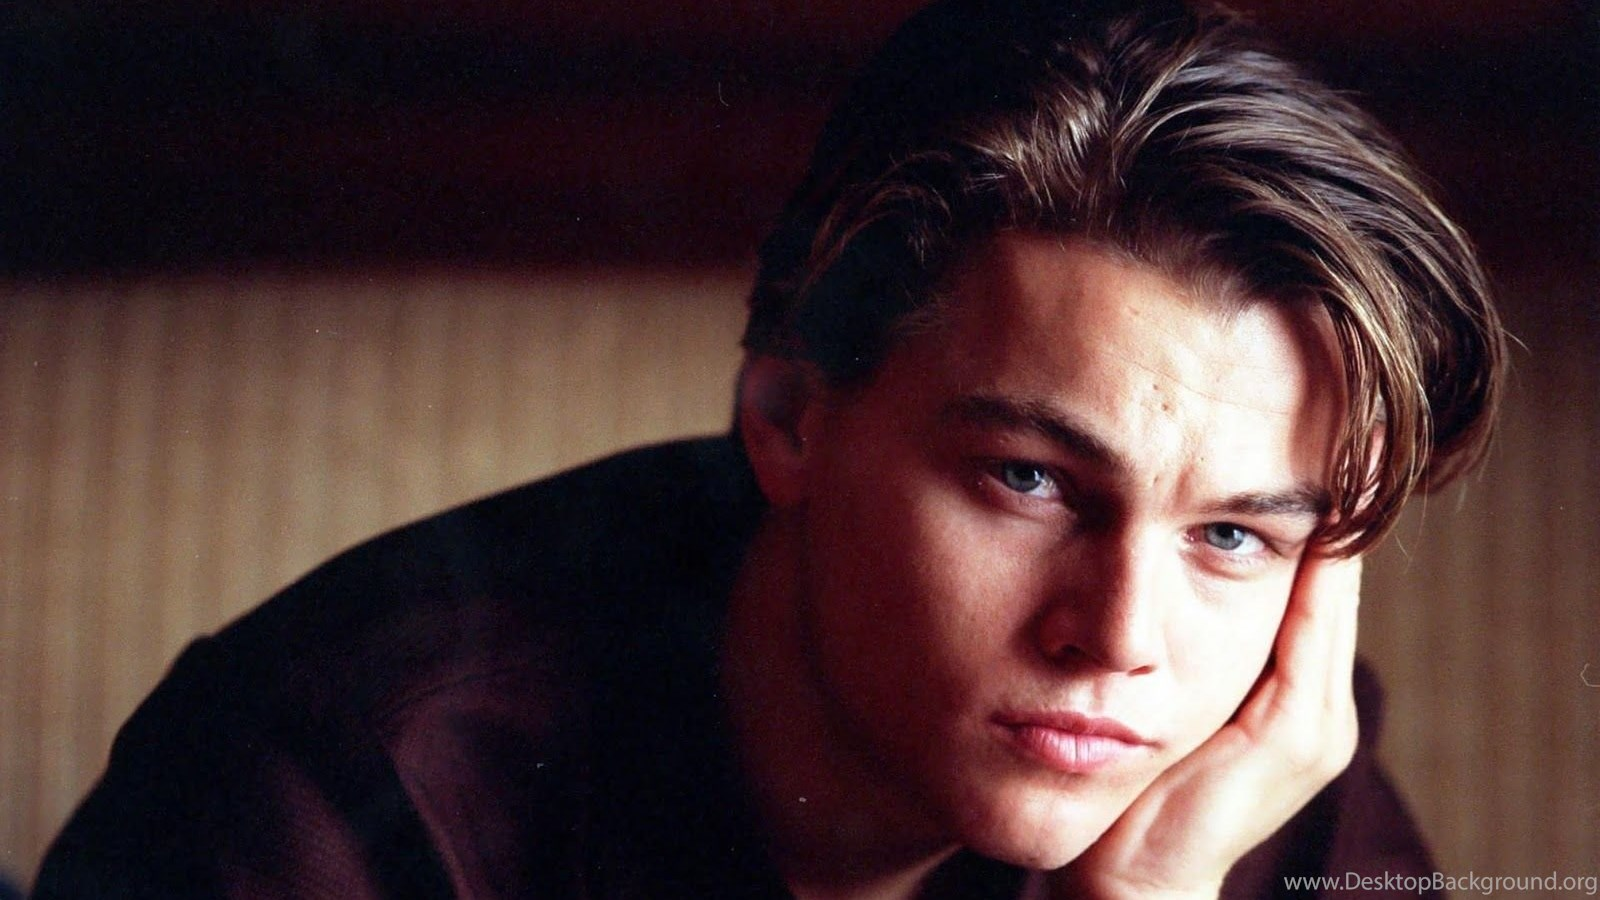 free leonardo dicaprio hd wallpapers desktop background